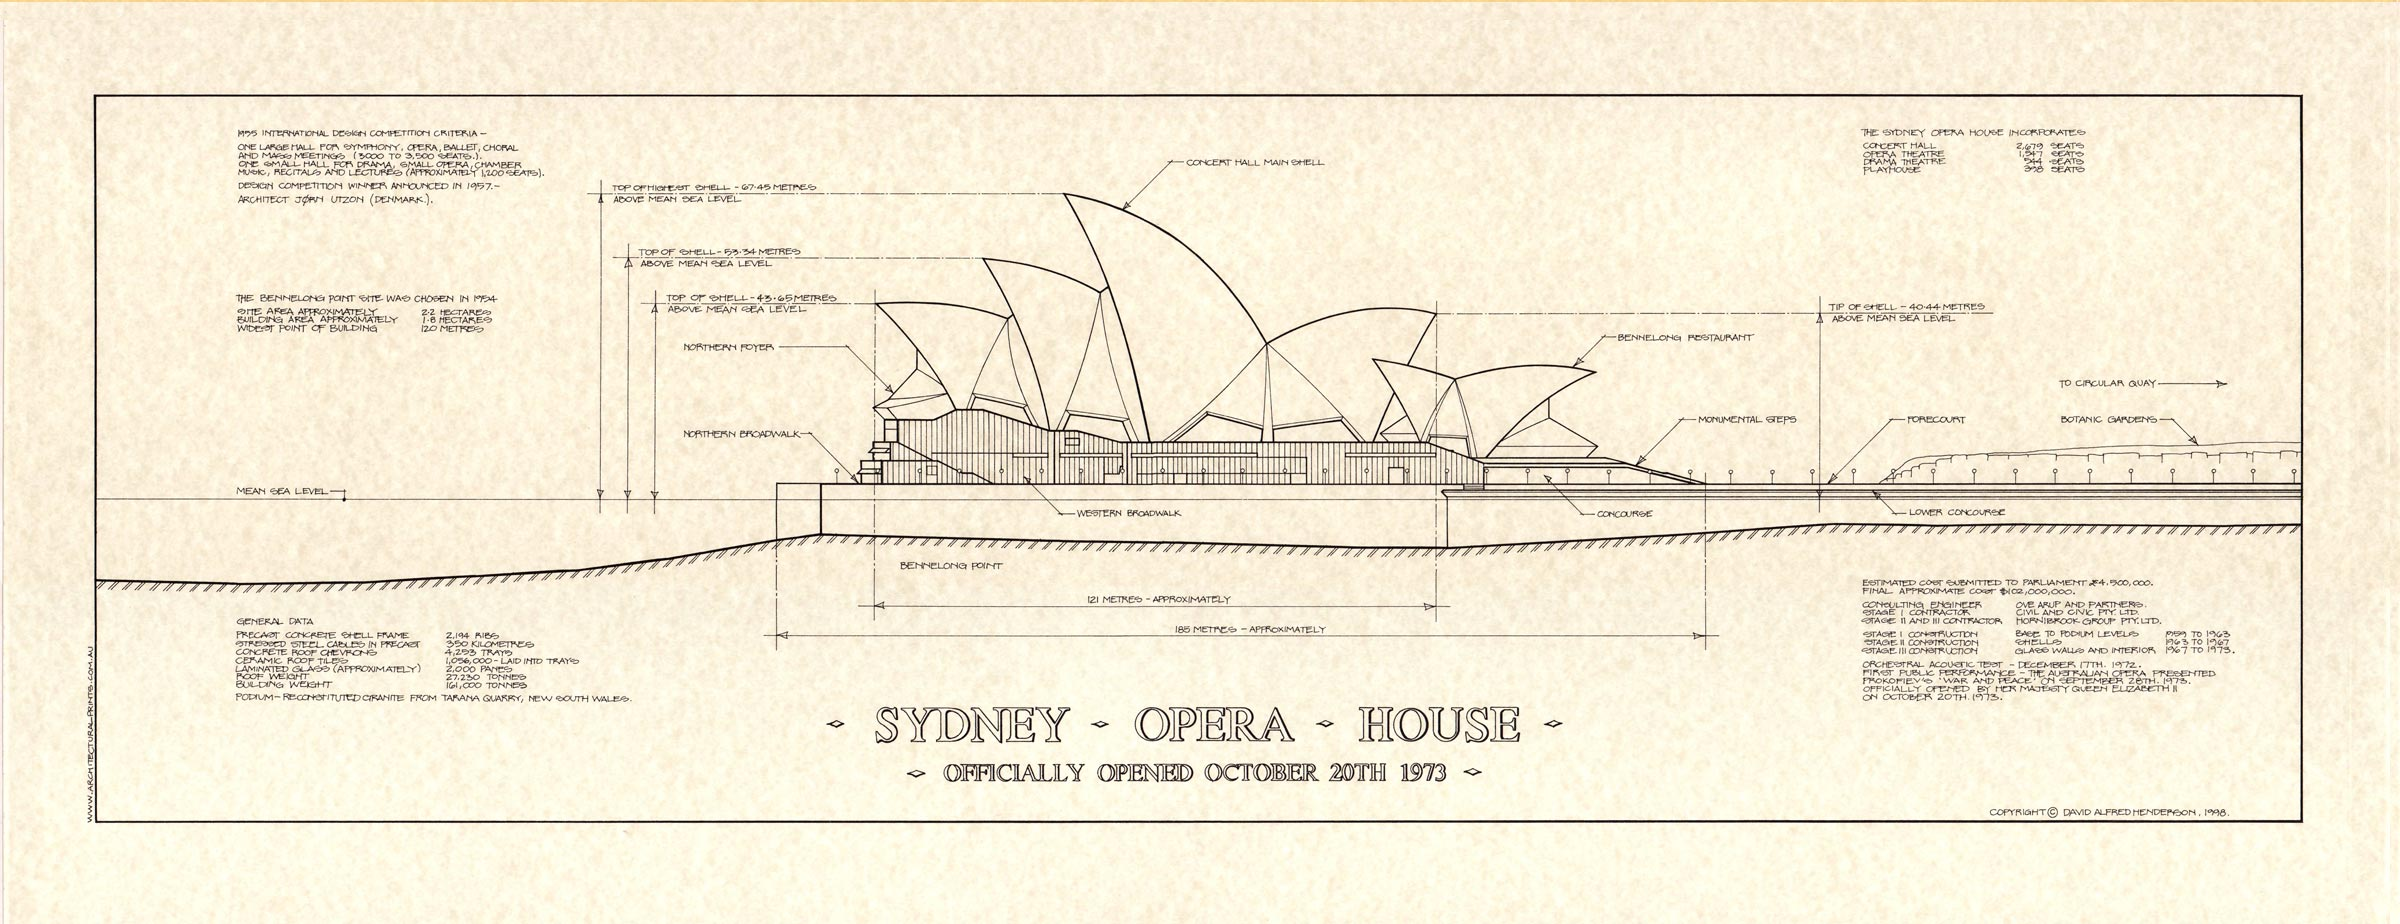 Sydney opera house print architectural prints for Printing architectural drawings